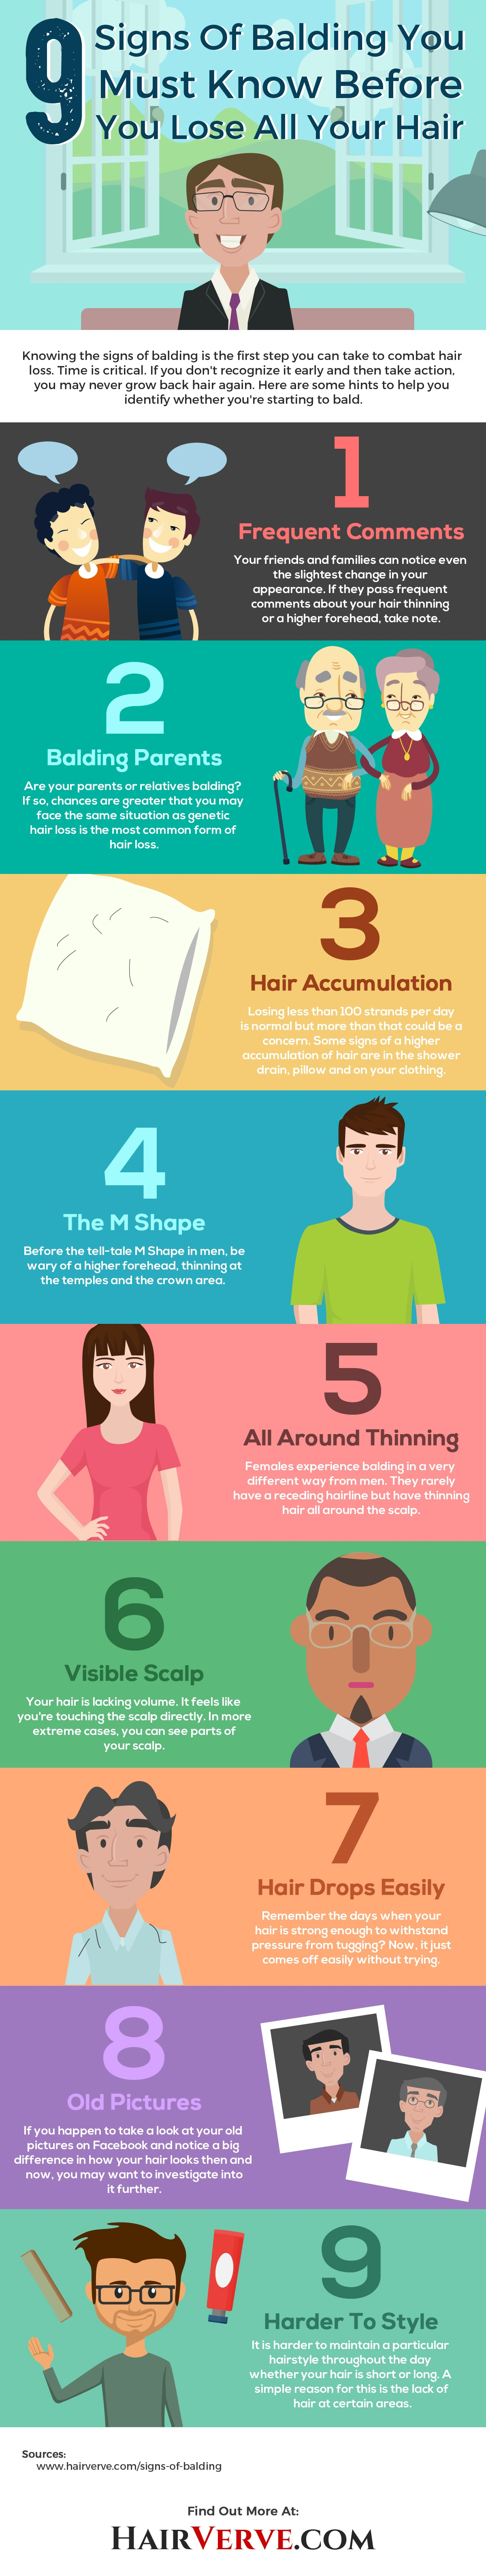 signs-of-balding-infographic (1)